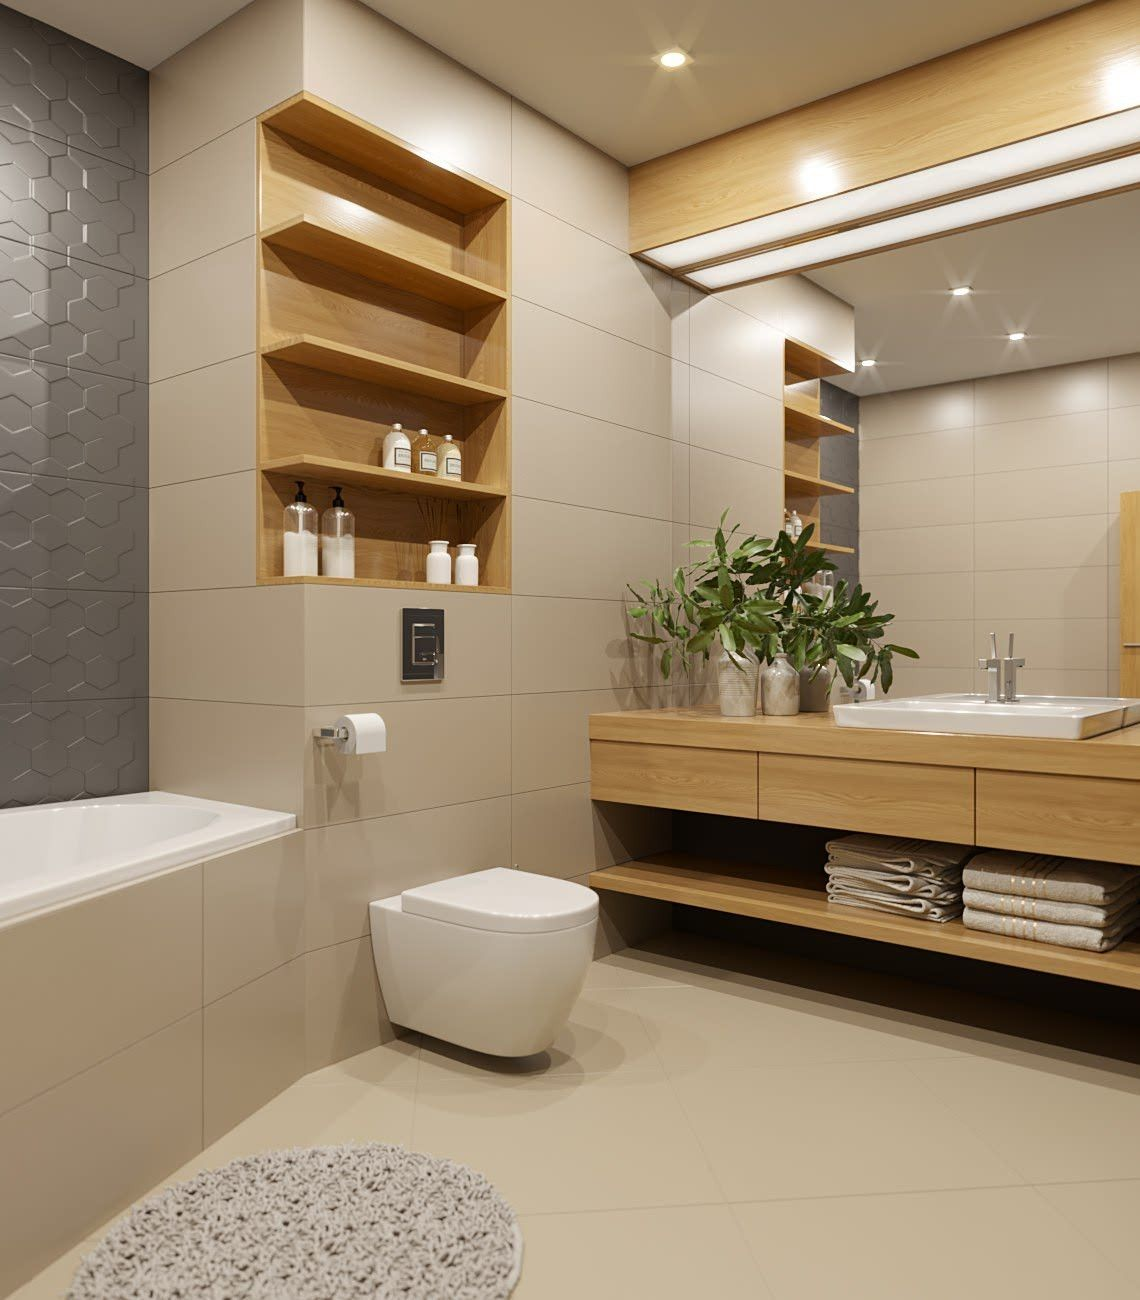 Bad Bauen Ideen Upotettu Hylly Kiva Kulmadesign Bathrooms In 2019 Bathroom